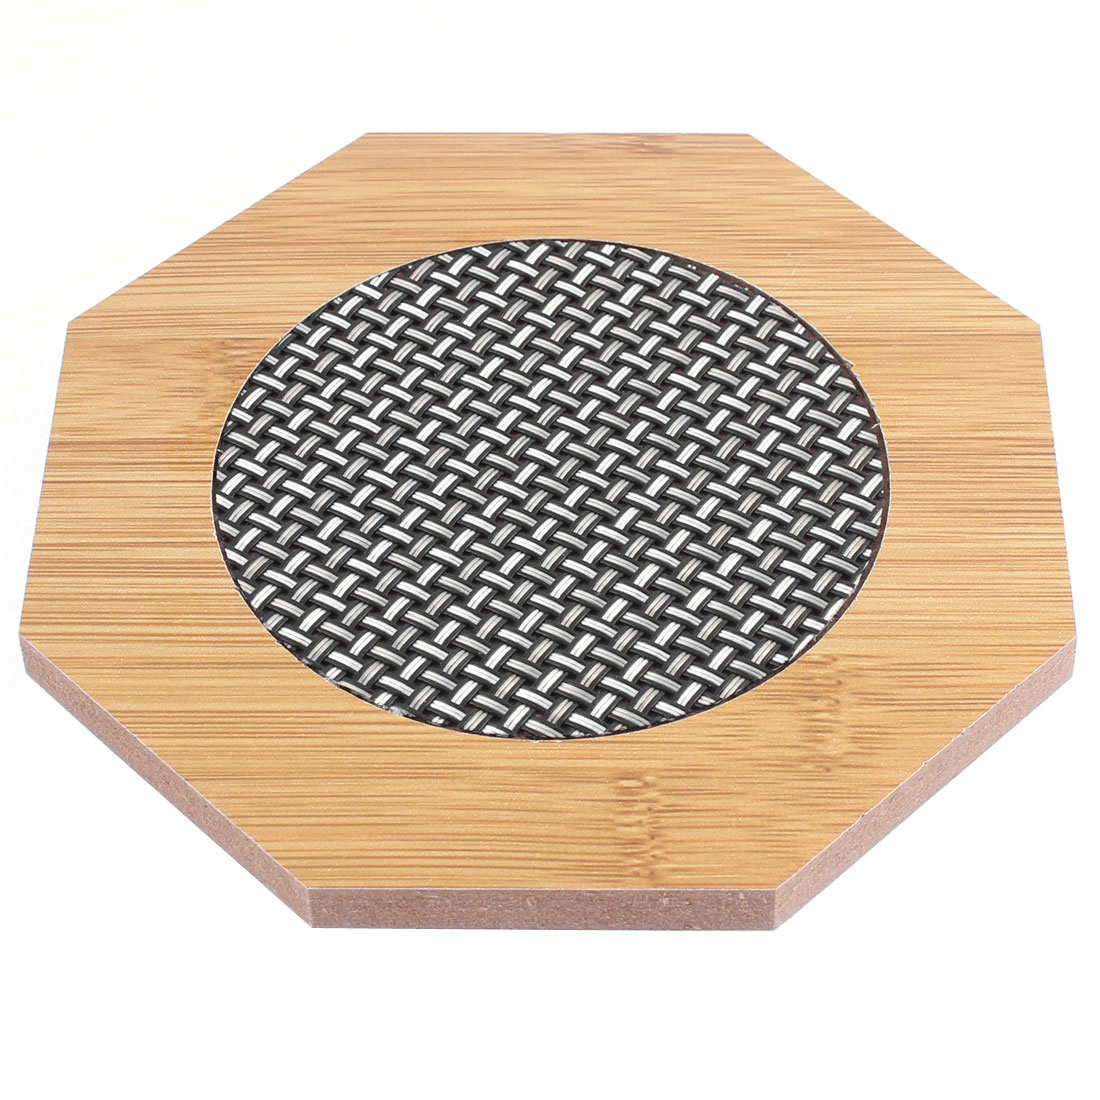 Household Wooden Octagon Shape Heat Resistant Mat Cup Pot Coaster Pad